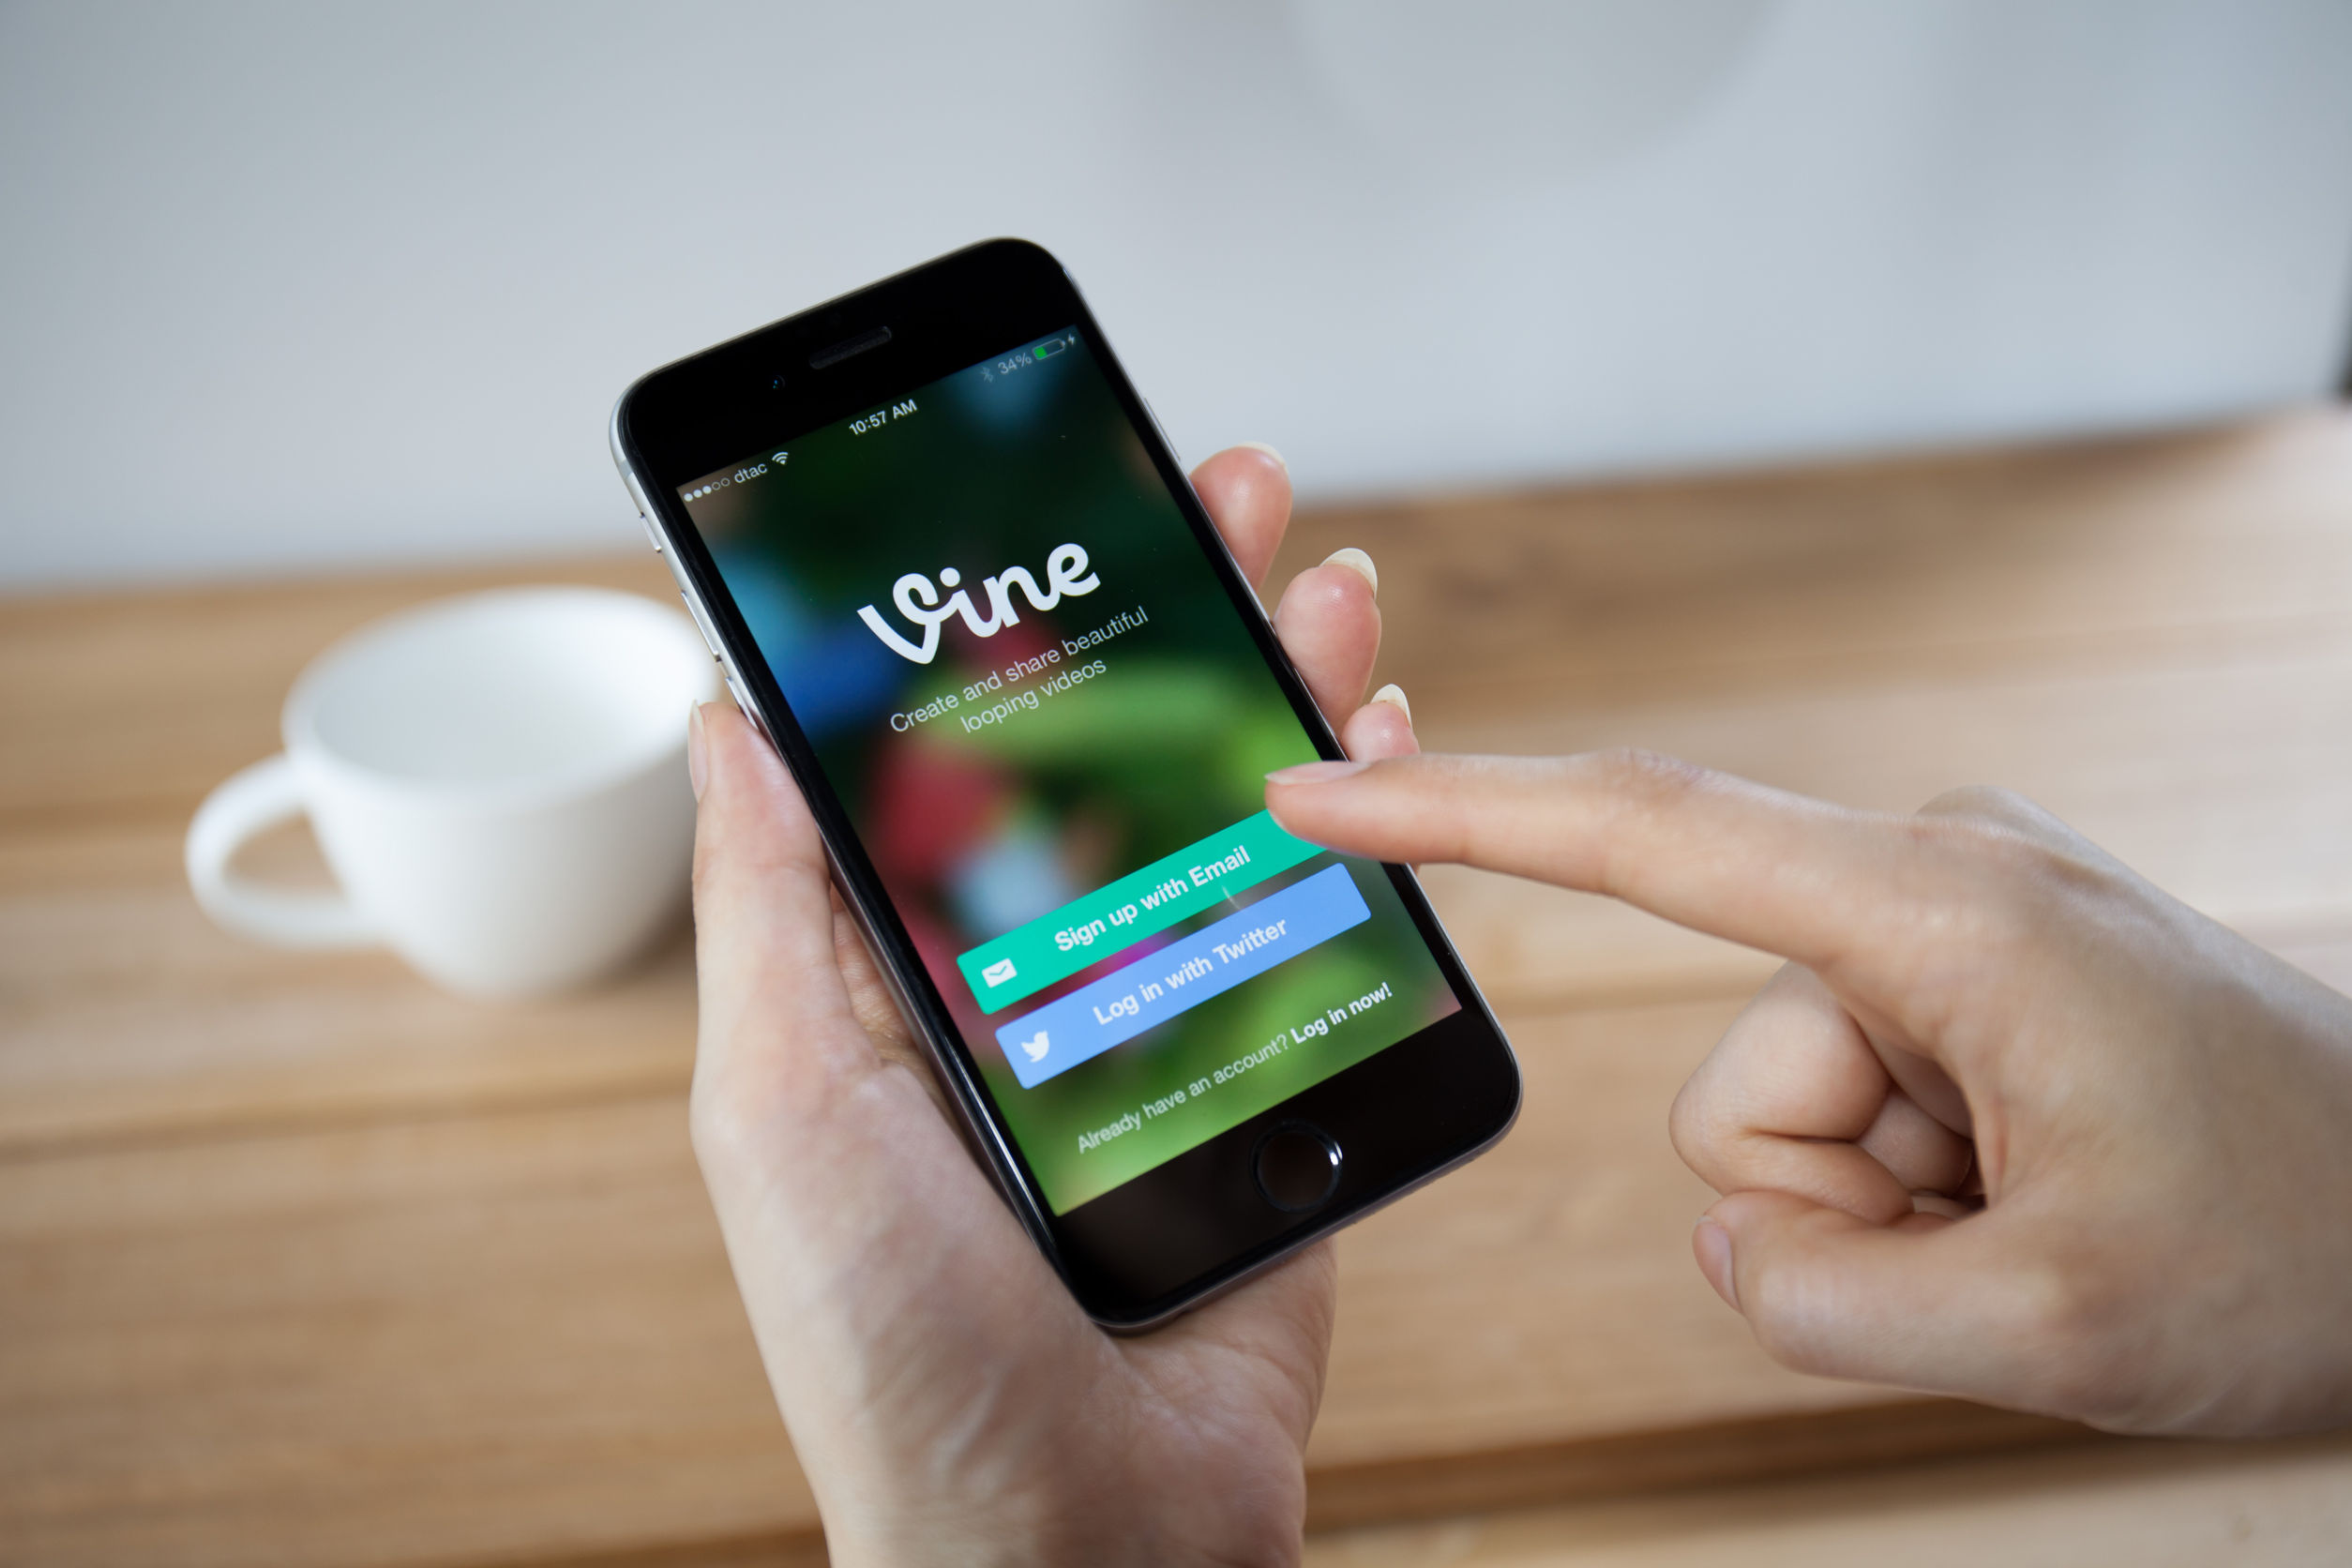 The Decline of Vine: Knowing When and How to Avoid Declining Video Platforms